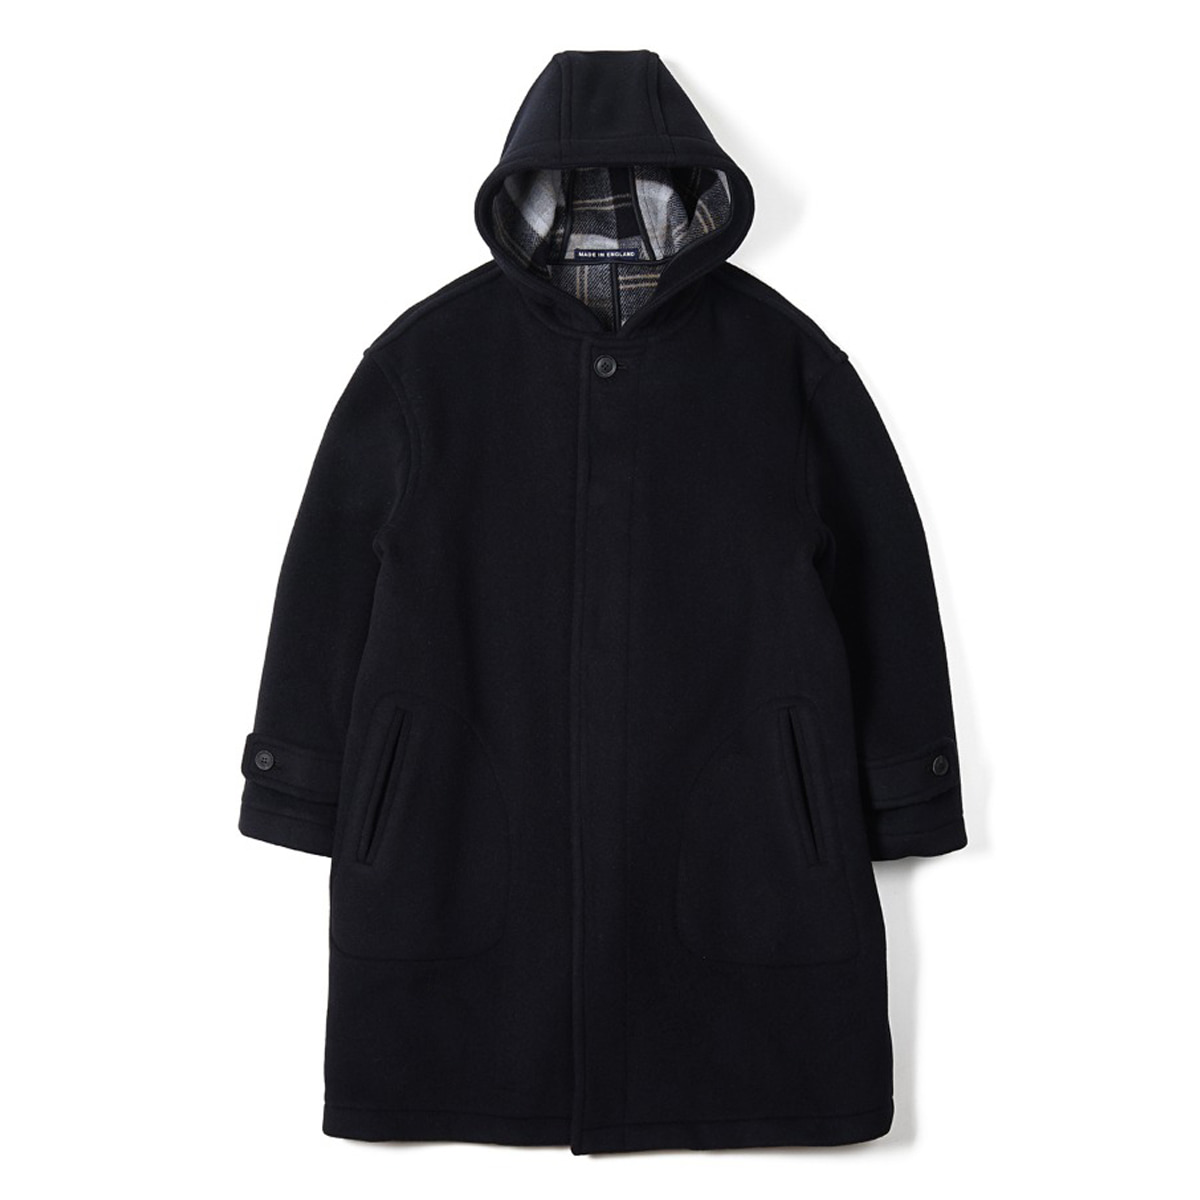 [LONDON TRADITION] SEATON OVERSIZE COAT 'NAVY SBB'